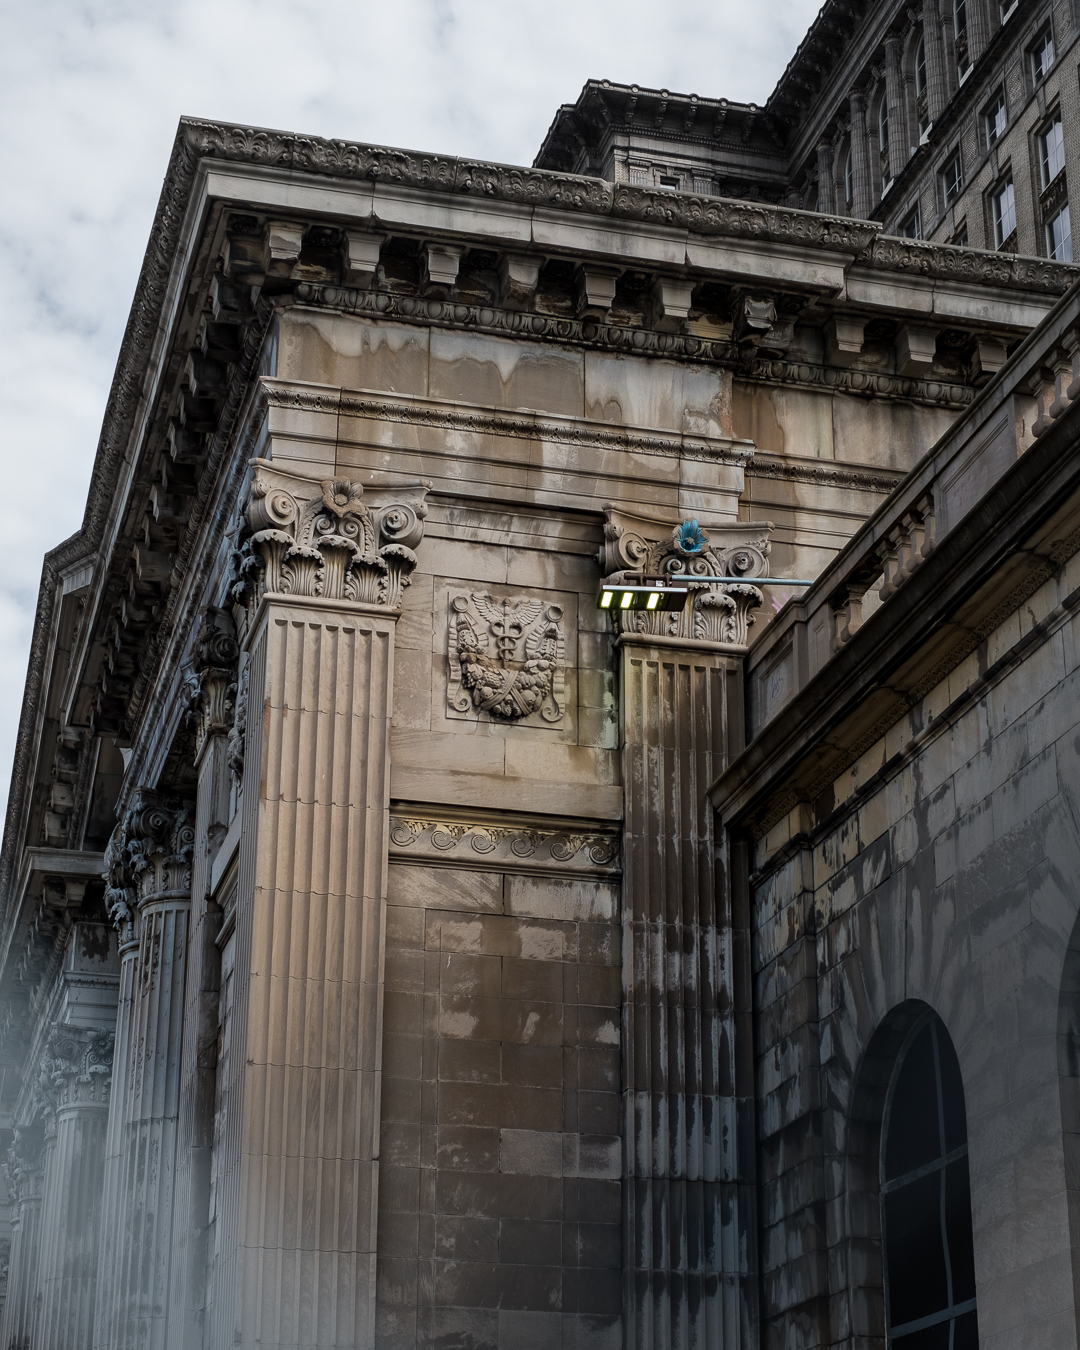 Details of the once abandoned Detroit Train Station.